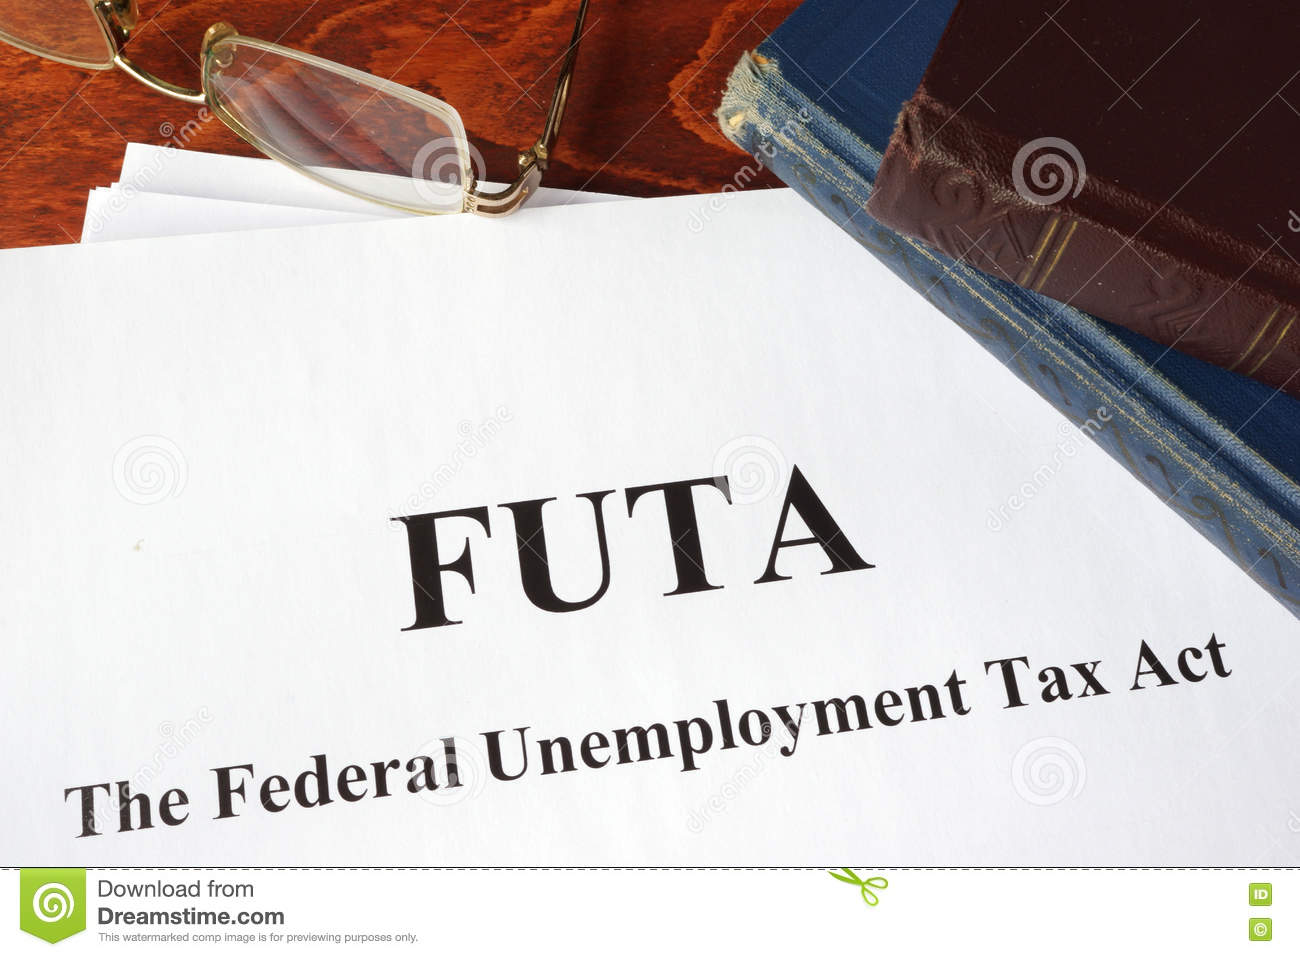 Futa Pictures for futa federal unemployment tax act stock image - image of health